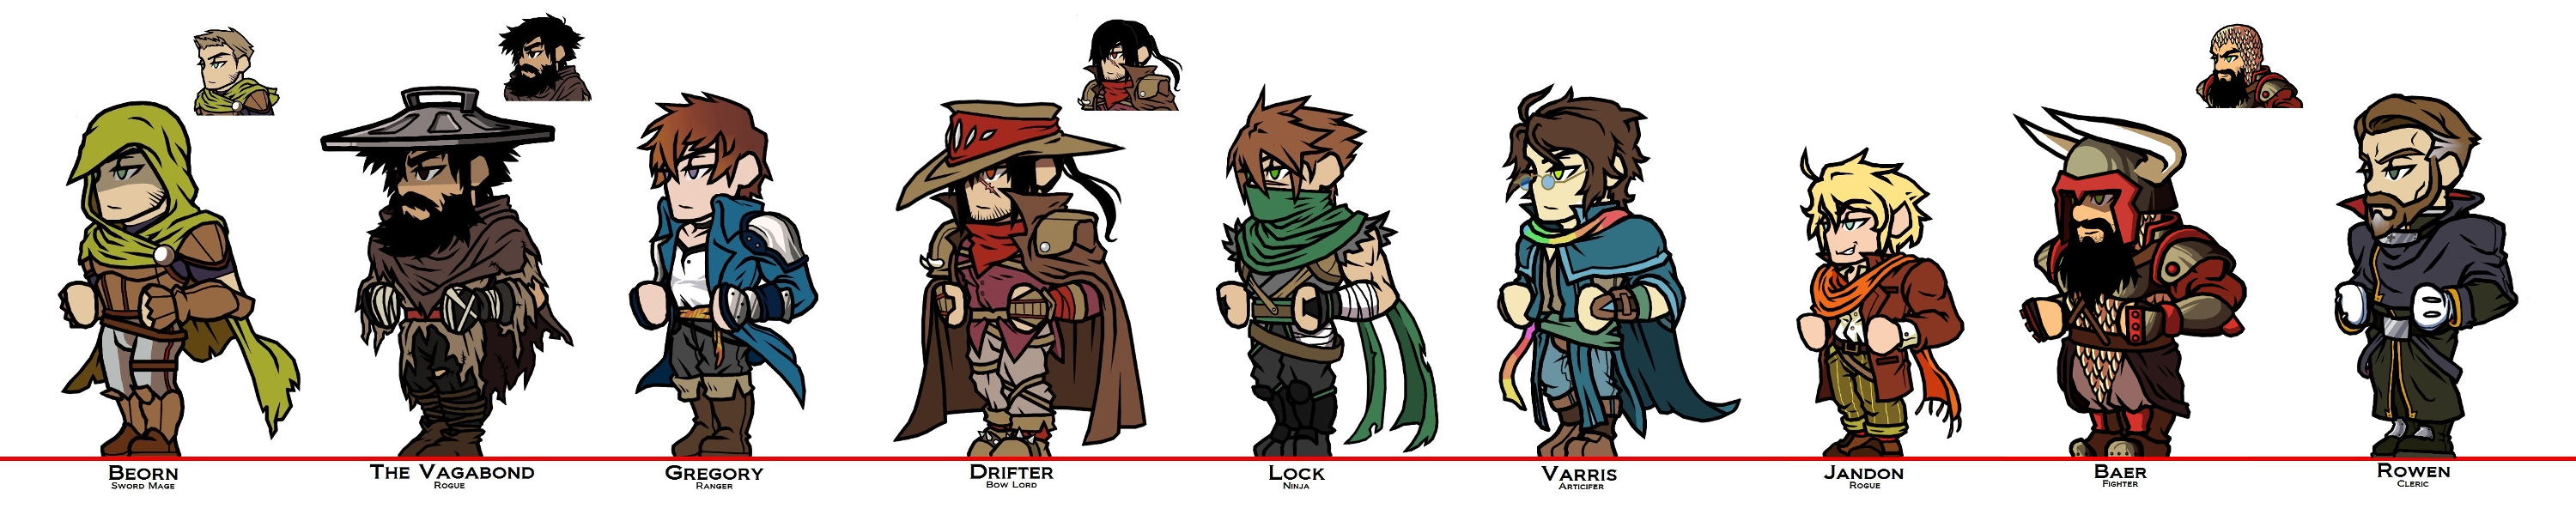 Dungeons and Dragons Roster